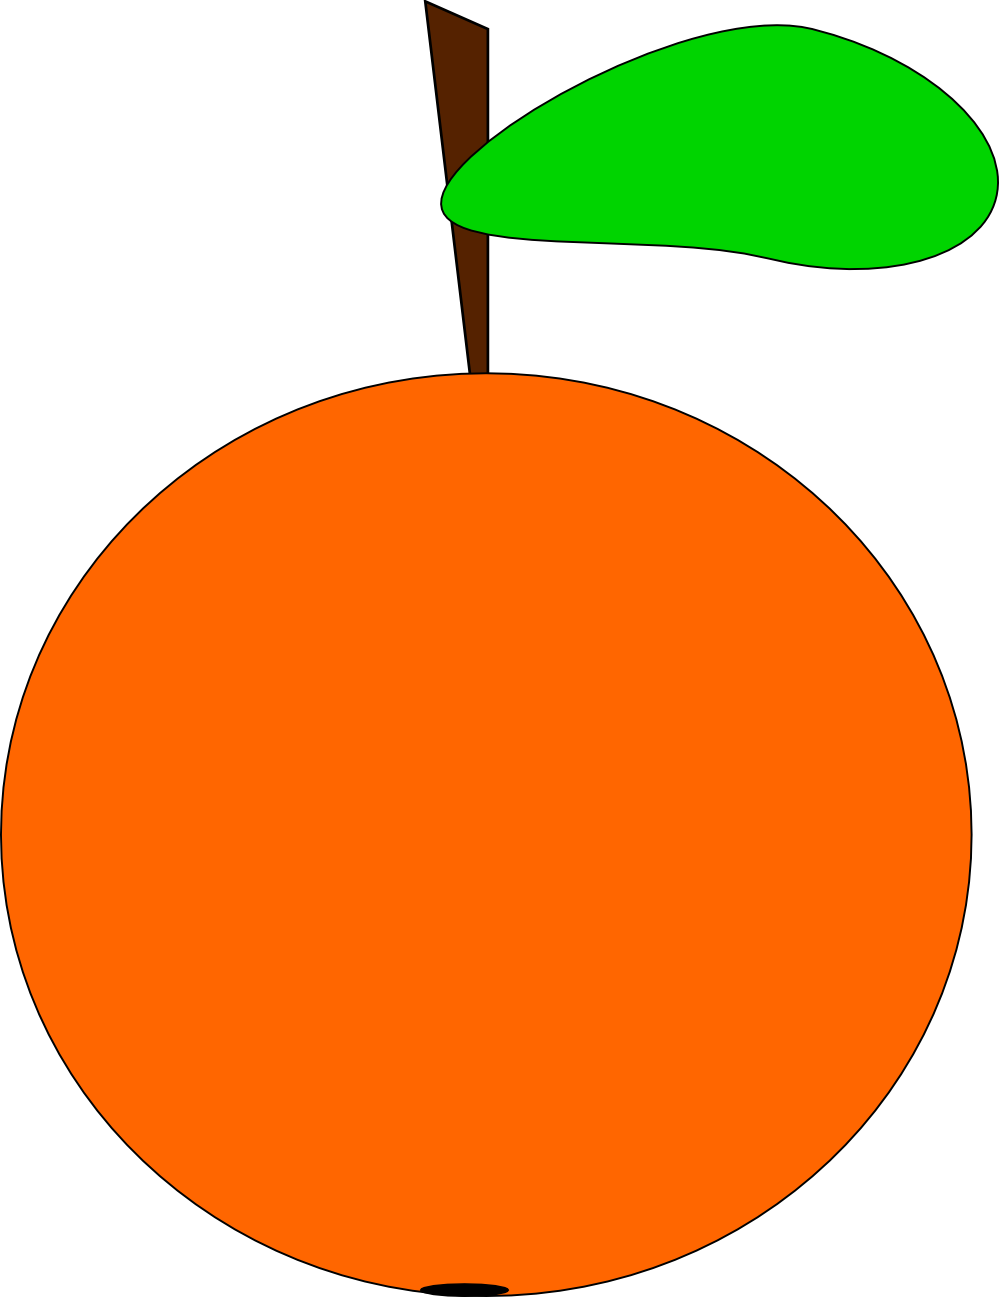 Orange svg #3, Download drawings